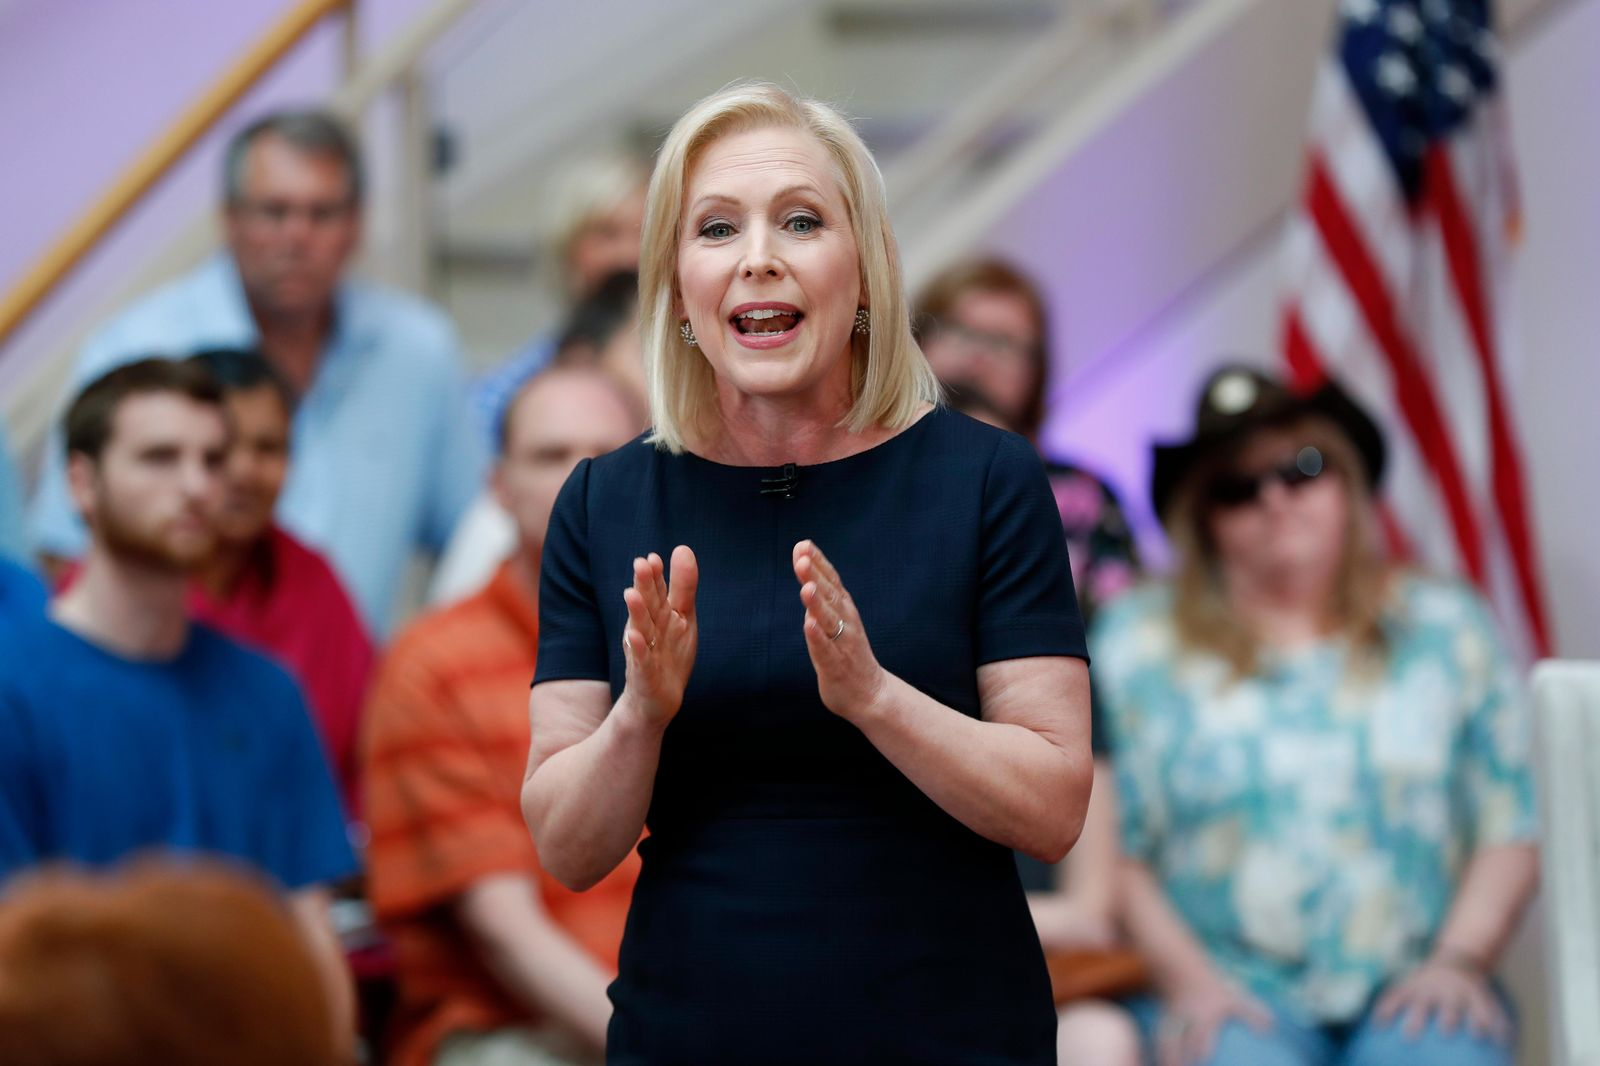 Democratic presidential candidate Sen. Kirsten Gillibrand speaks during a FOX News town hall, Sunday, June 2, 2019, in Dubuque, Iowa. (AP Photo/Charlie Neibergall)